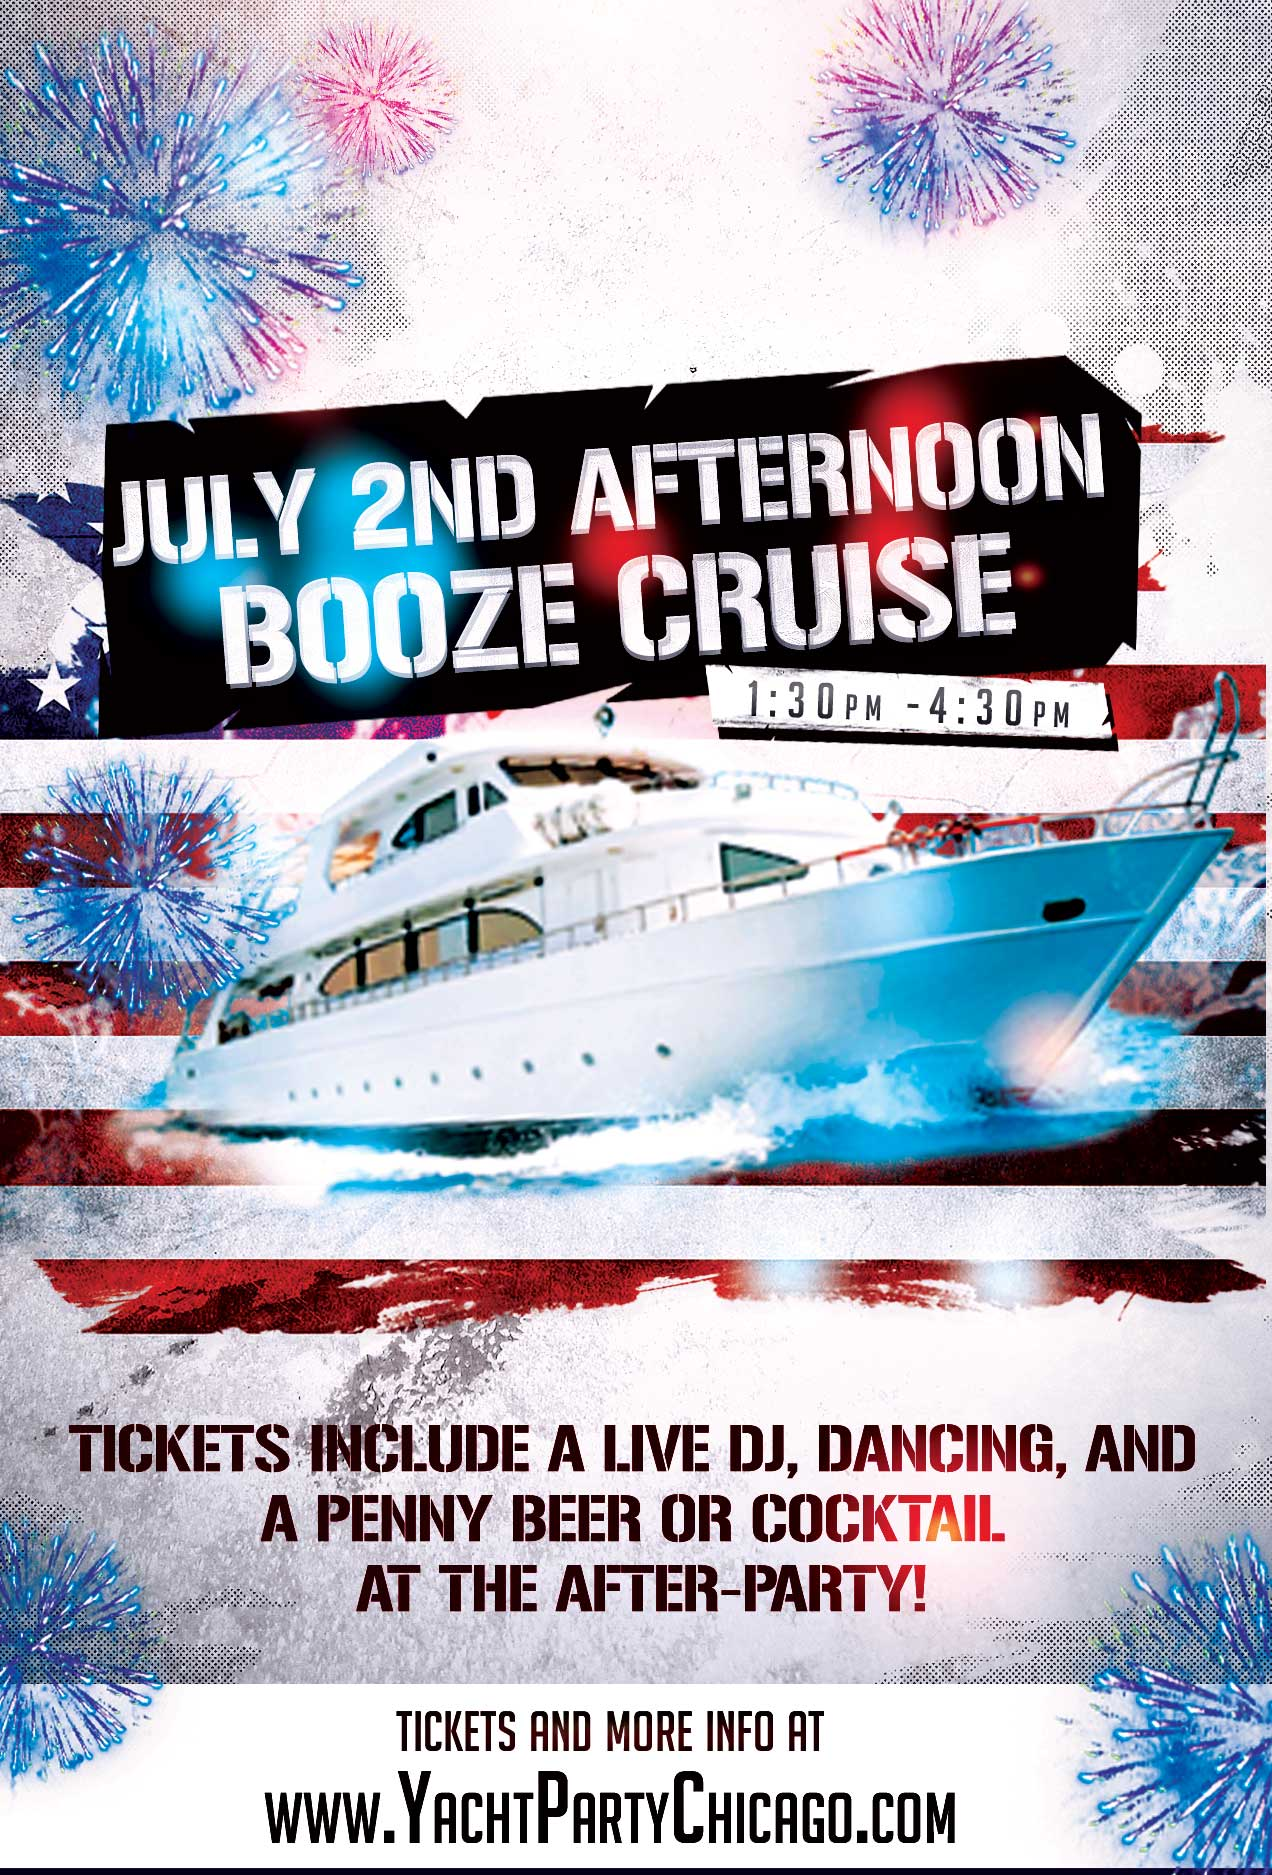 July 2nd Afternoon Booze Cruise on Lake Michigan! Tickets include a Live DJ, Dancing, and A Penny Beer or Cocktail At The After-Party! Catch breathtaking views of the skyline while aboard the booze cruise!